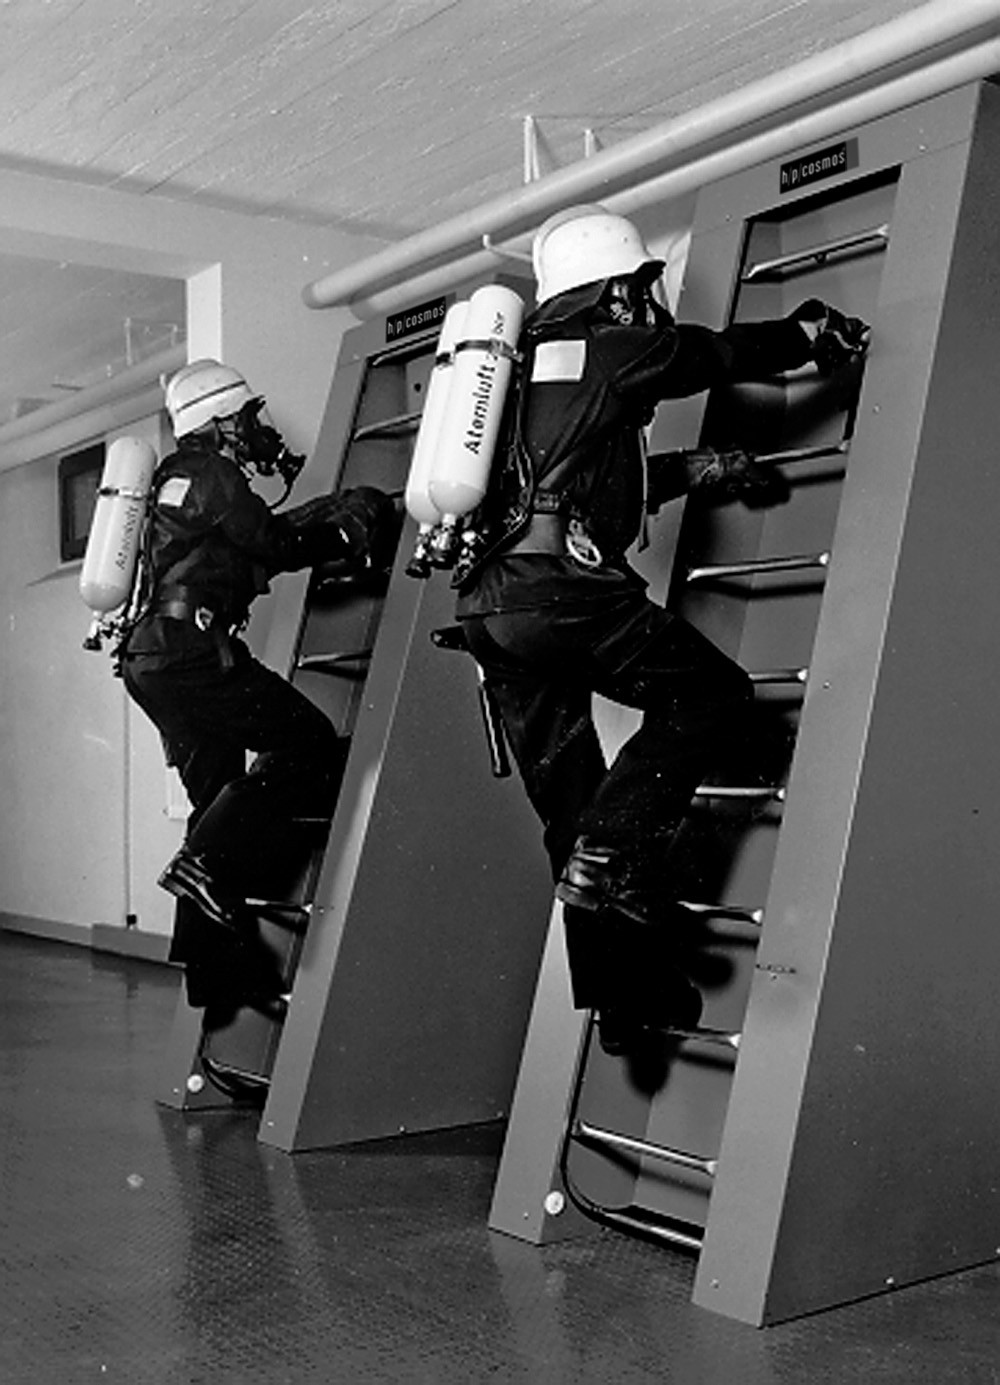 h/p/cosmos ladder ergometer discovery - fire fighters